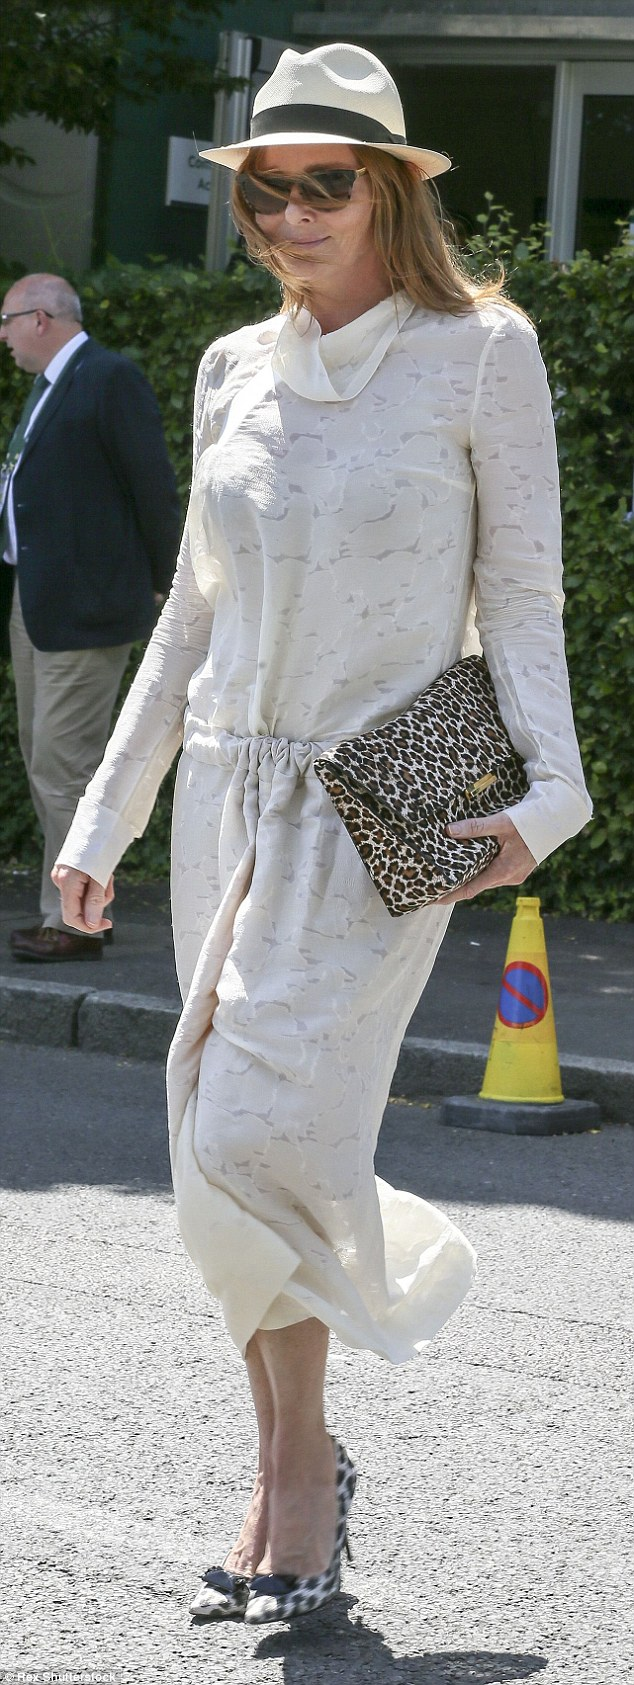 Fashion designer Stella McCartney showed off her wild side in a pair of leopard print high-heeled shoes